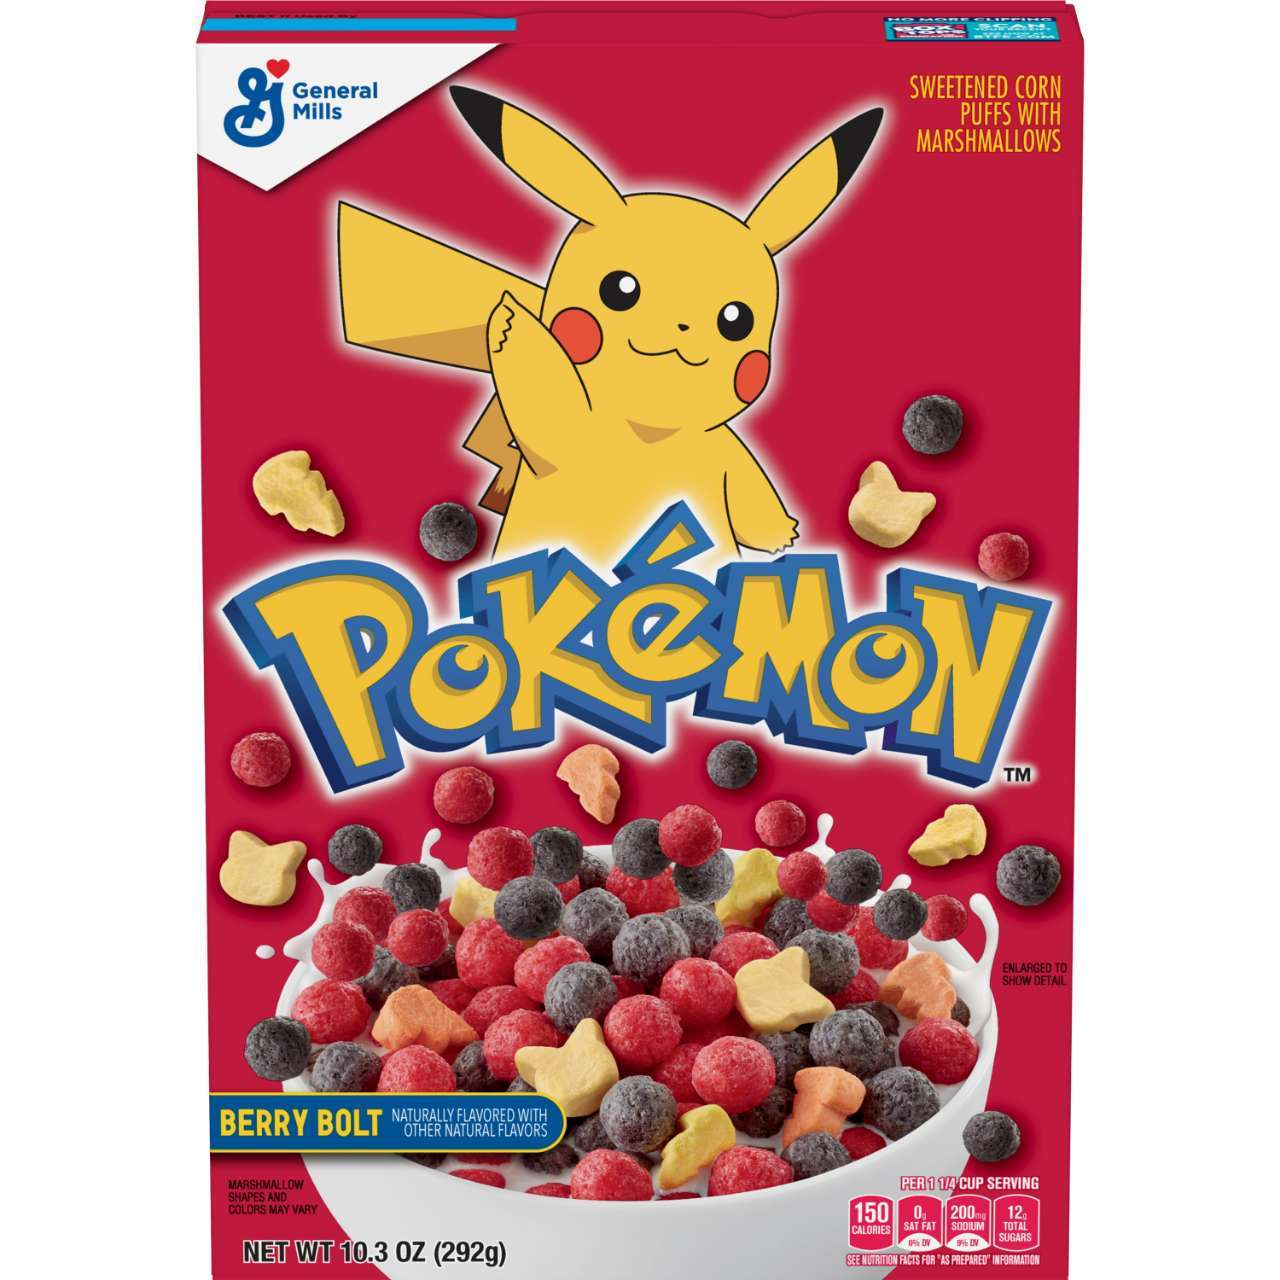 General Mills is releasing 16 new cereals including Pokémon and Sesame Street 12